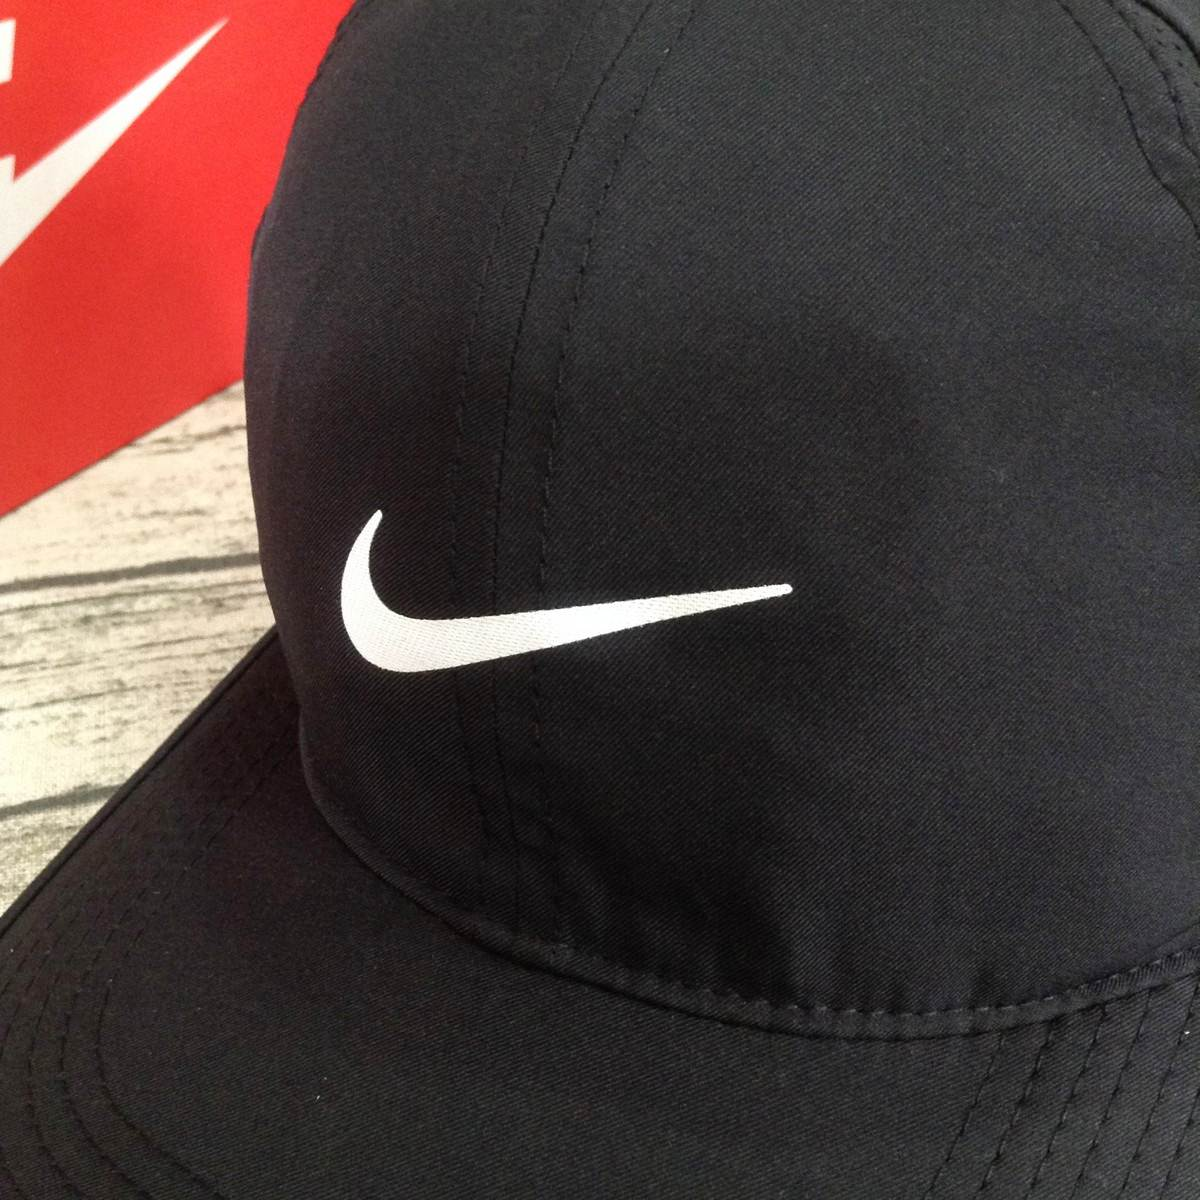 Mũ thể thao nam Nike Feather Light 679421-010